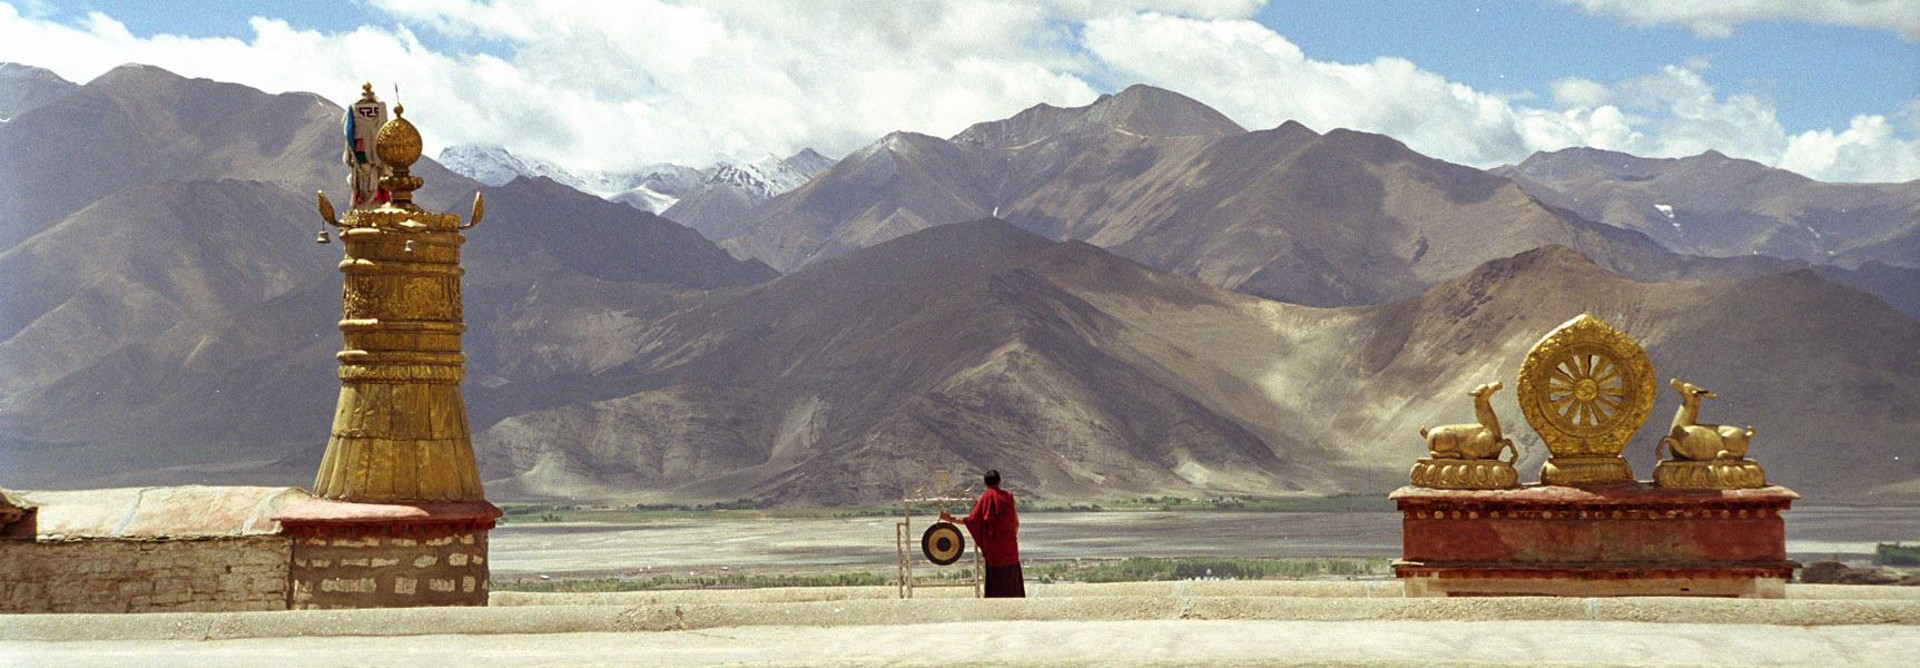 Monk On Rooftop, Lhasa, Tibet by Cora Edmonds